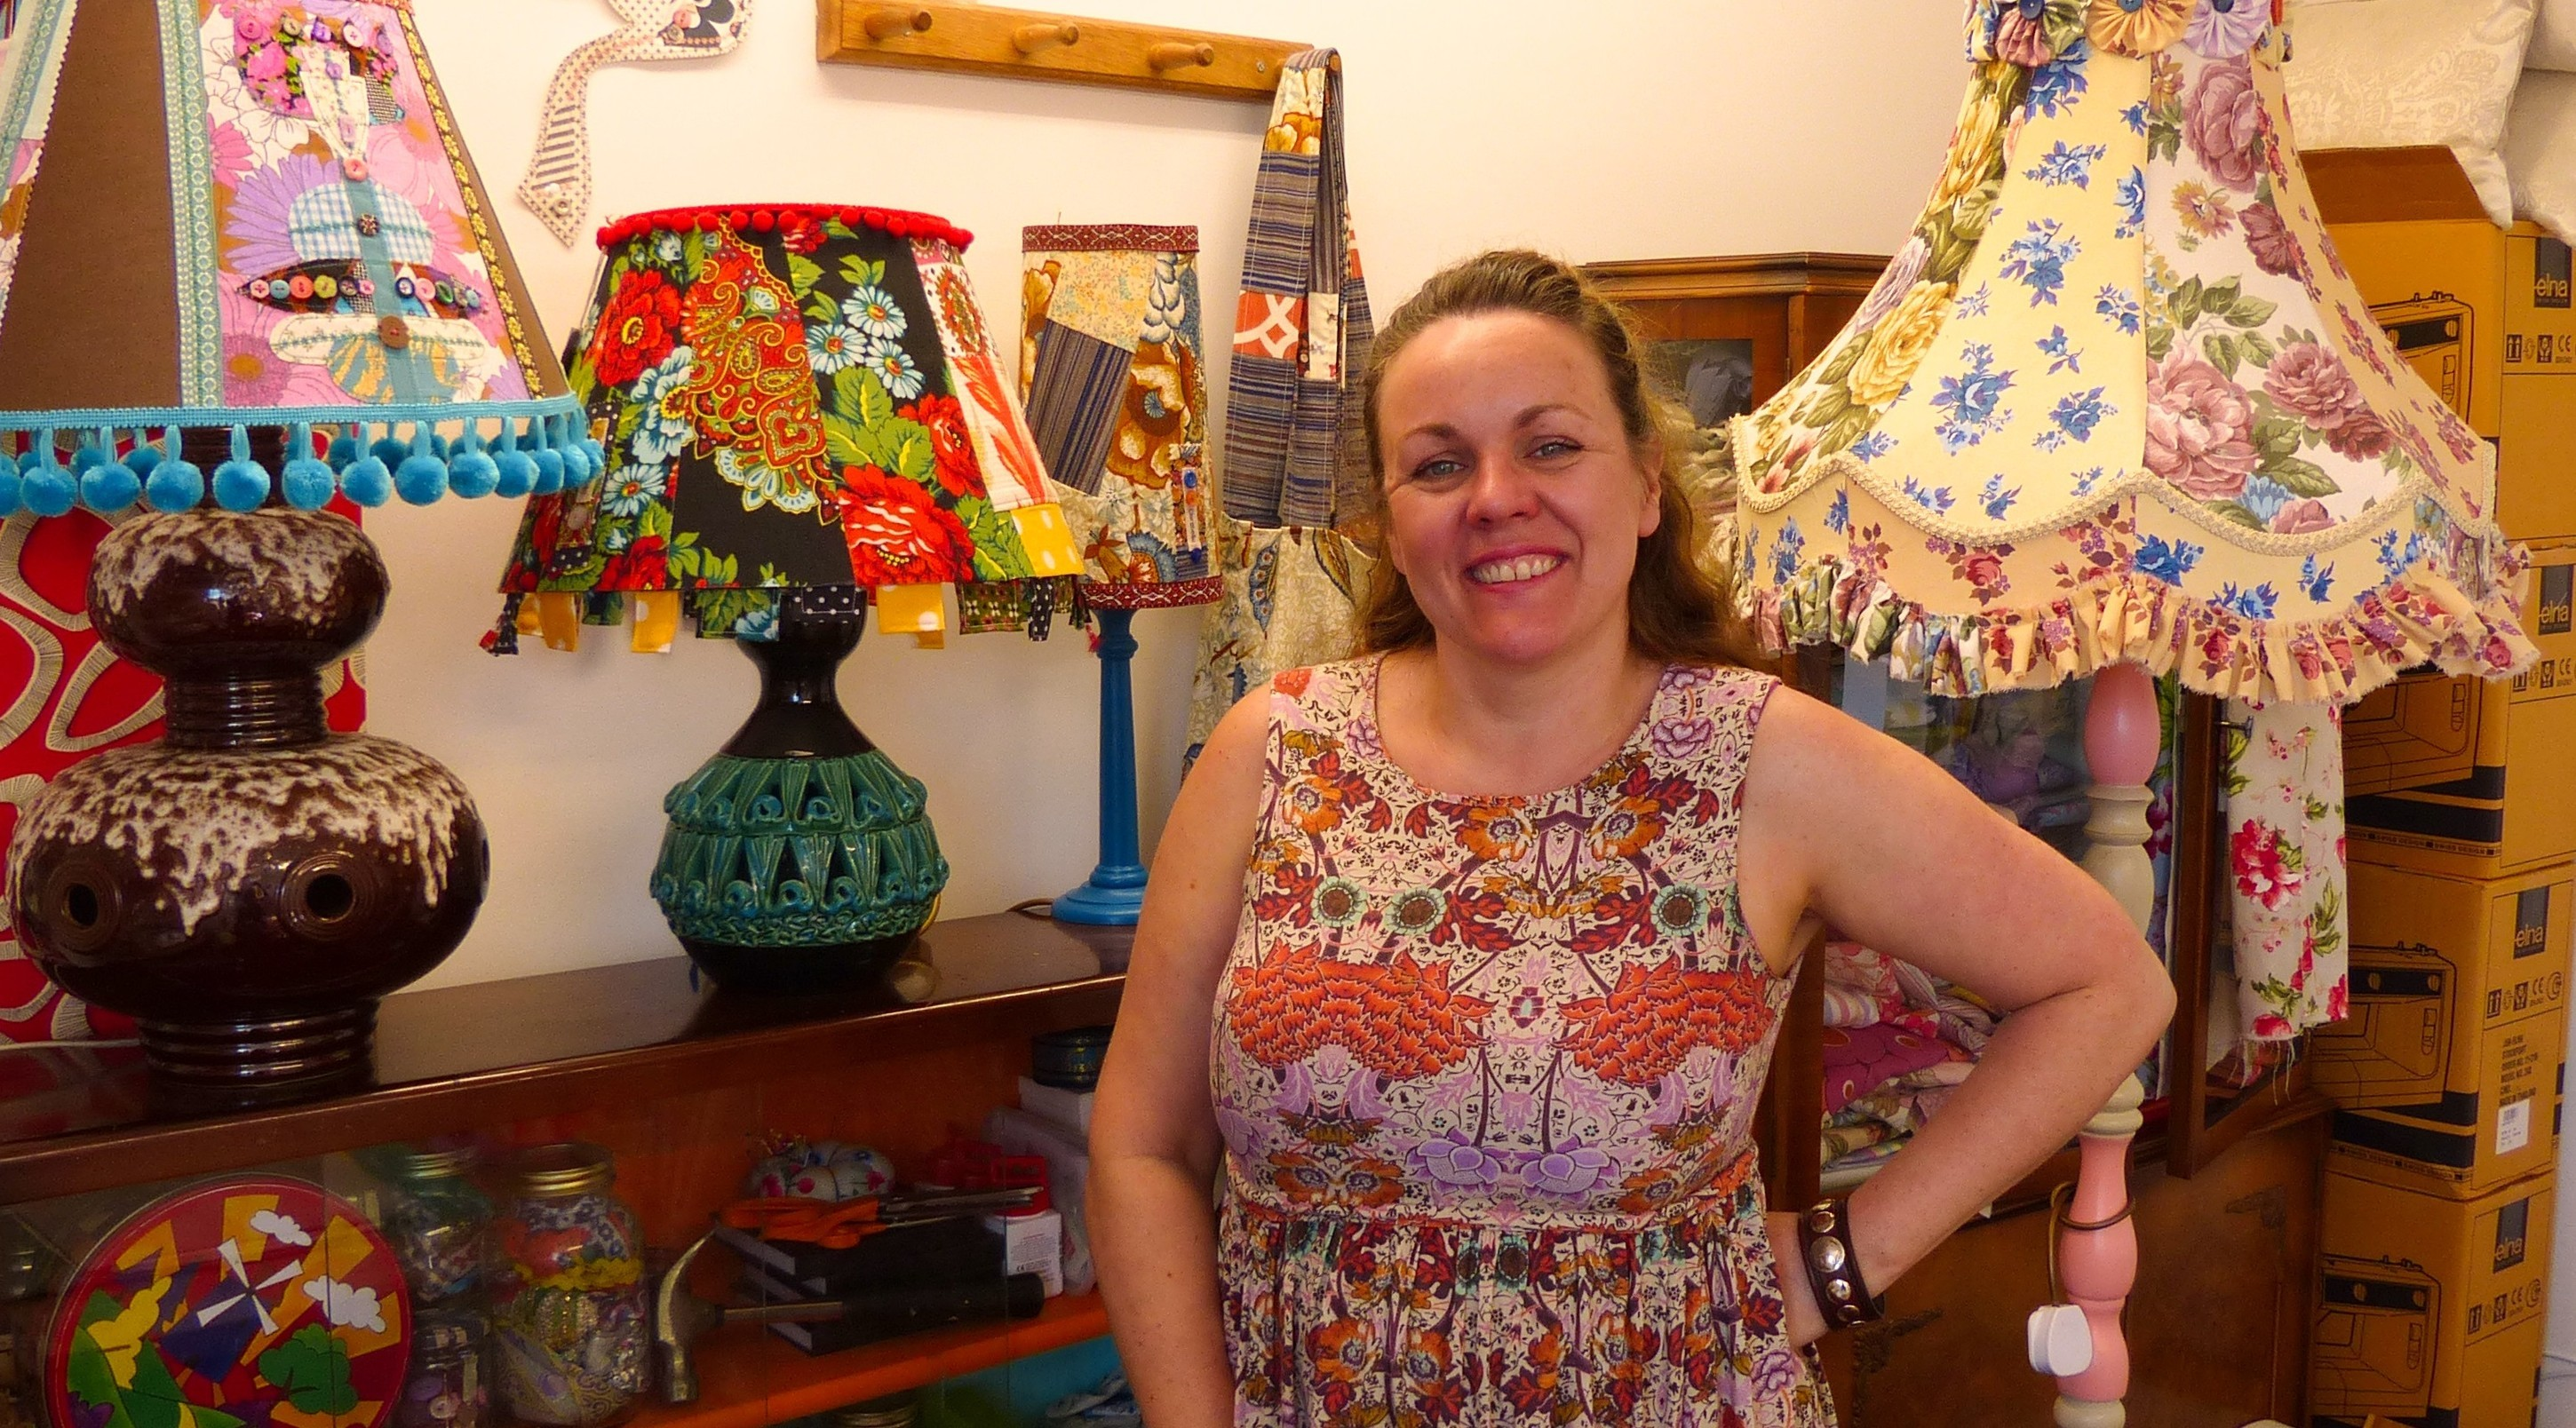 Claire Christie, who is based at the Fire Station Creative studios, will be holding a workshop on lampshade making